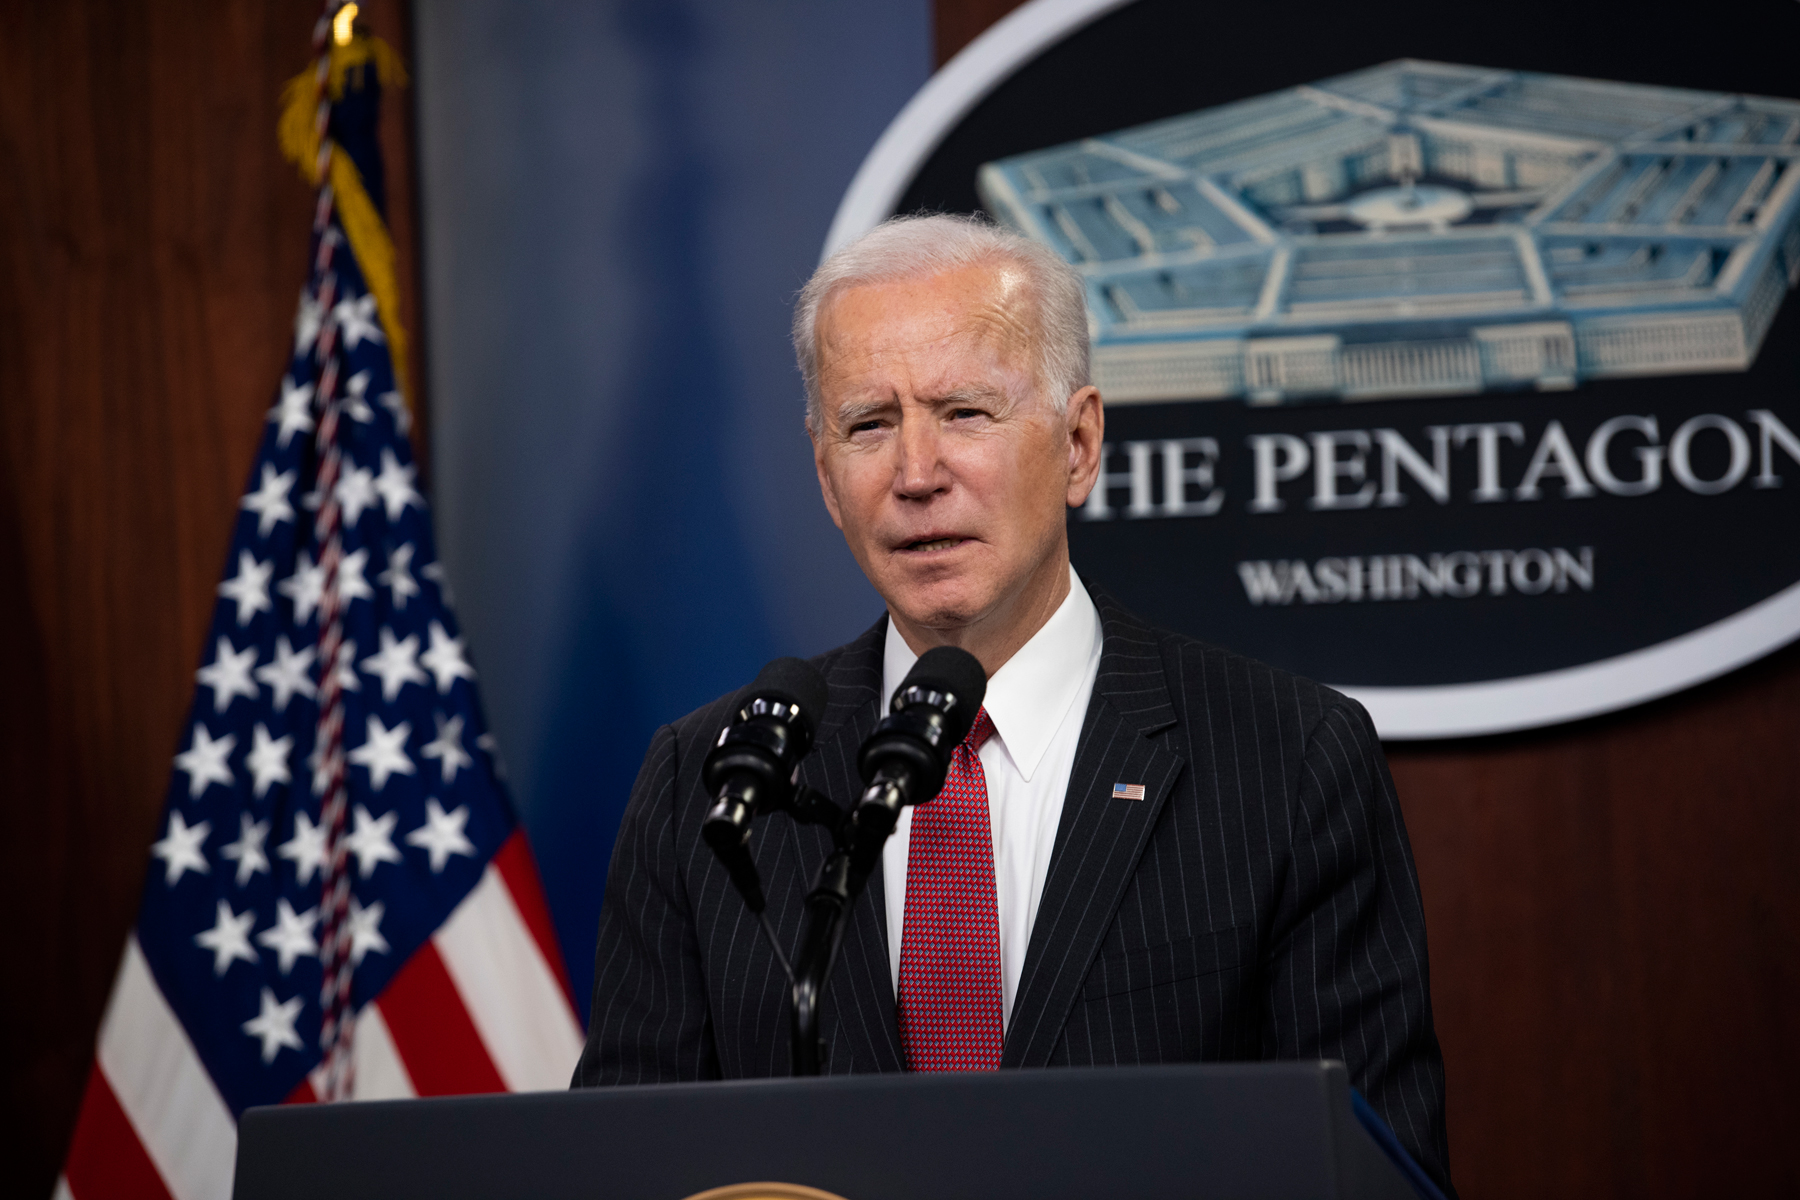 4 Issues That Will Shape the Biden Administration's Foreign Policy